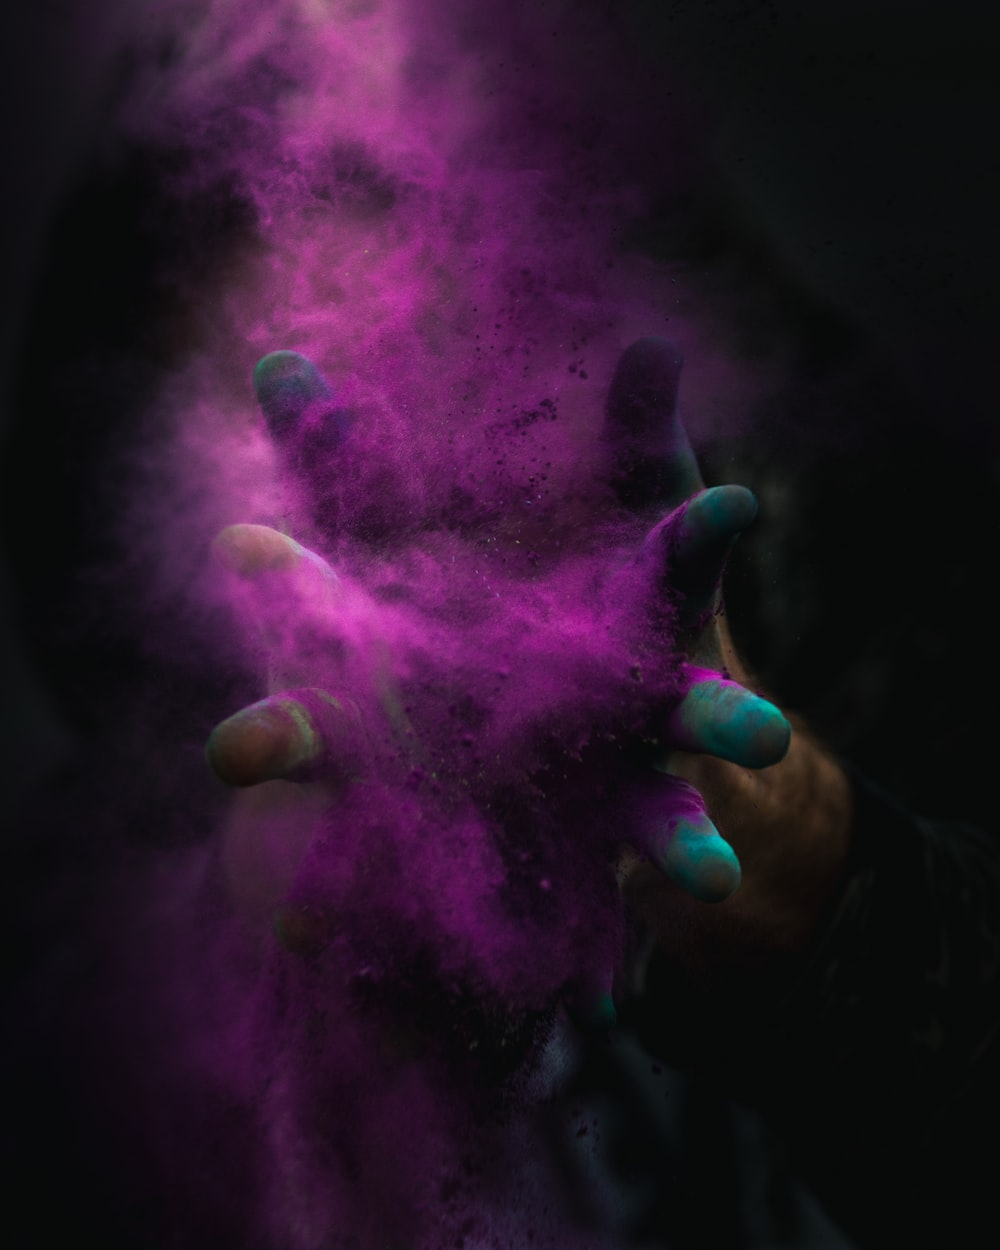 time-lapse photography of person spreading purple powder